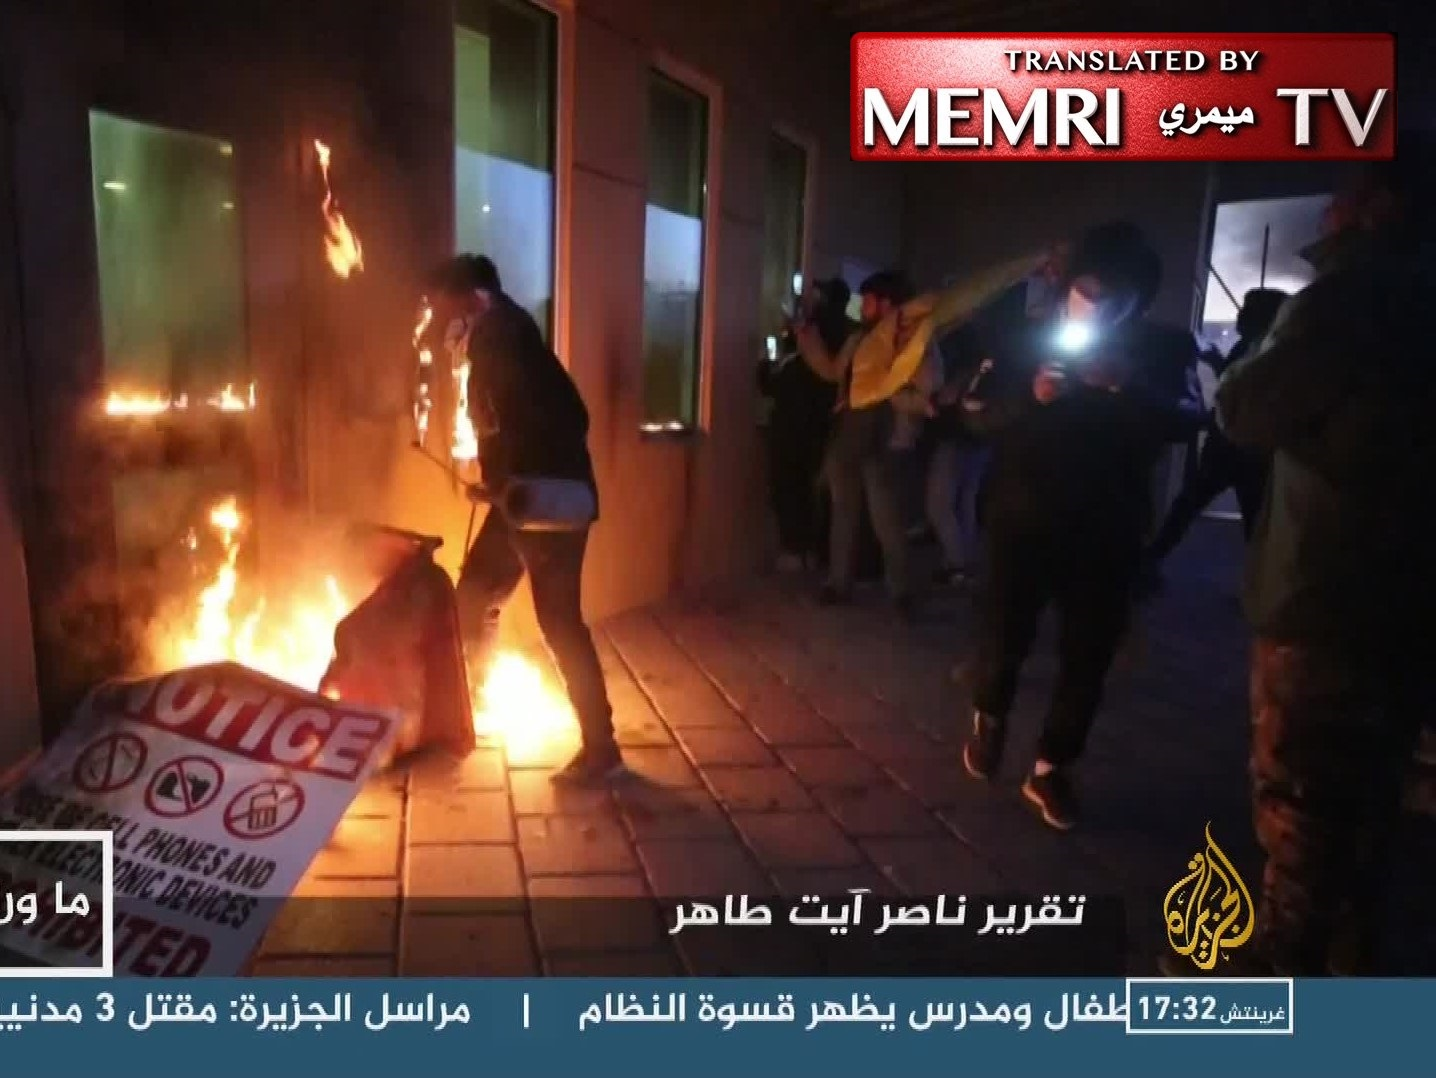 Al-Jazeera Report on Aftermath of Riots at U.S. Embassy in Baghdad: U.S. Troop Increase in Iraq Shows that Trump Administration Does Not Understand That Iraqis Are Angry about American Policies